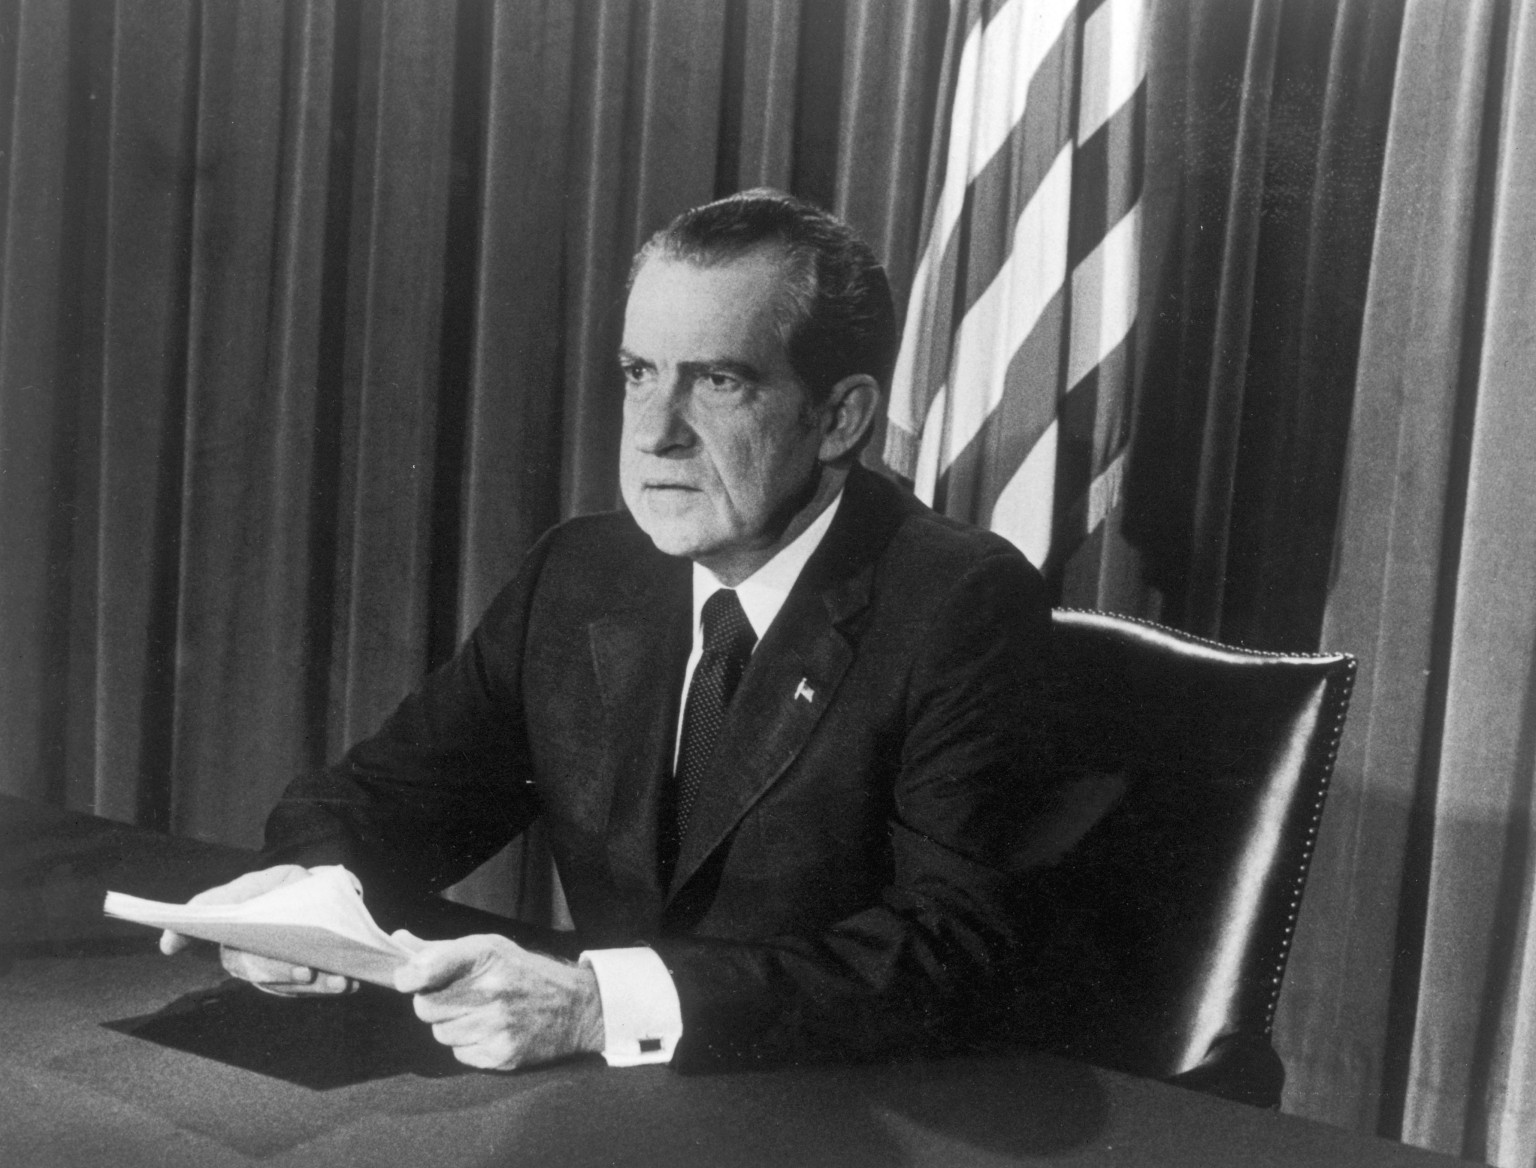 a biography of richard m nixon 37th president of the united states of america